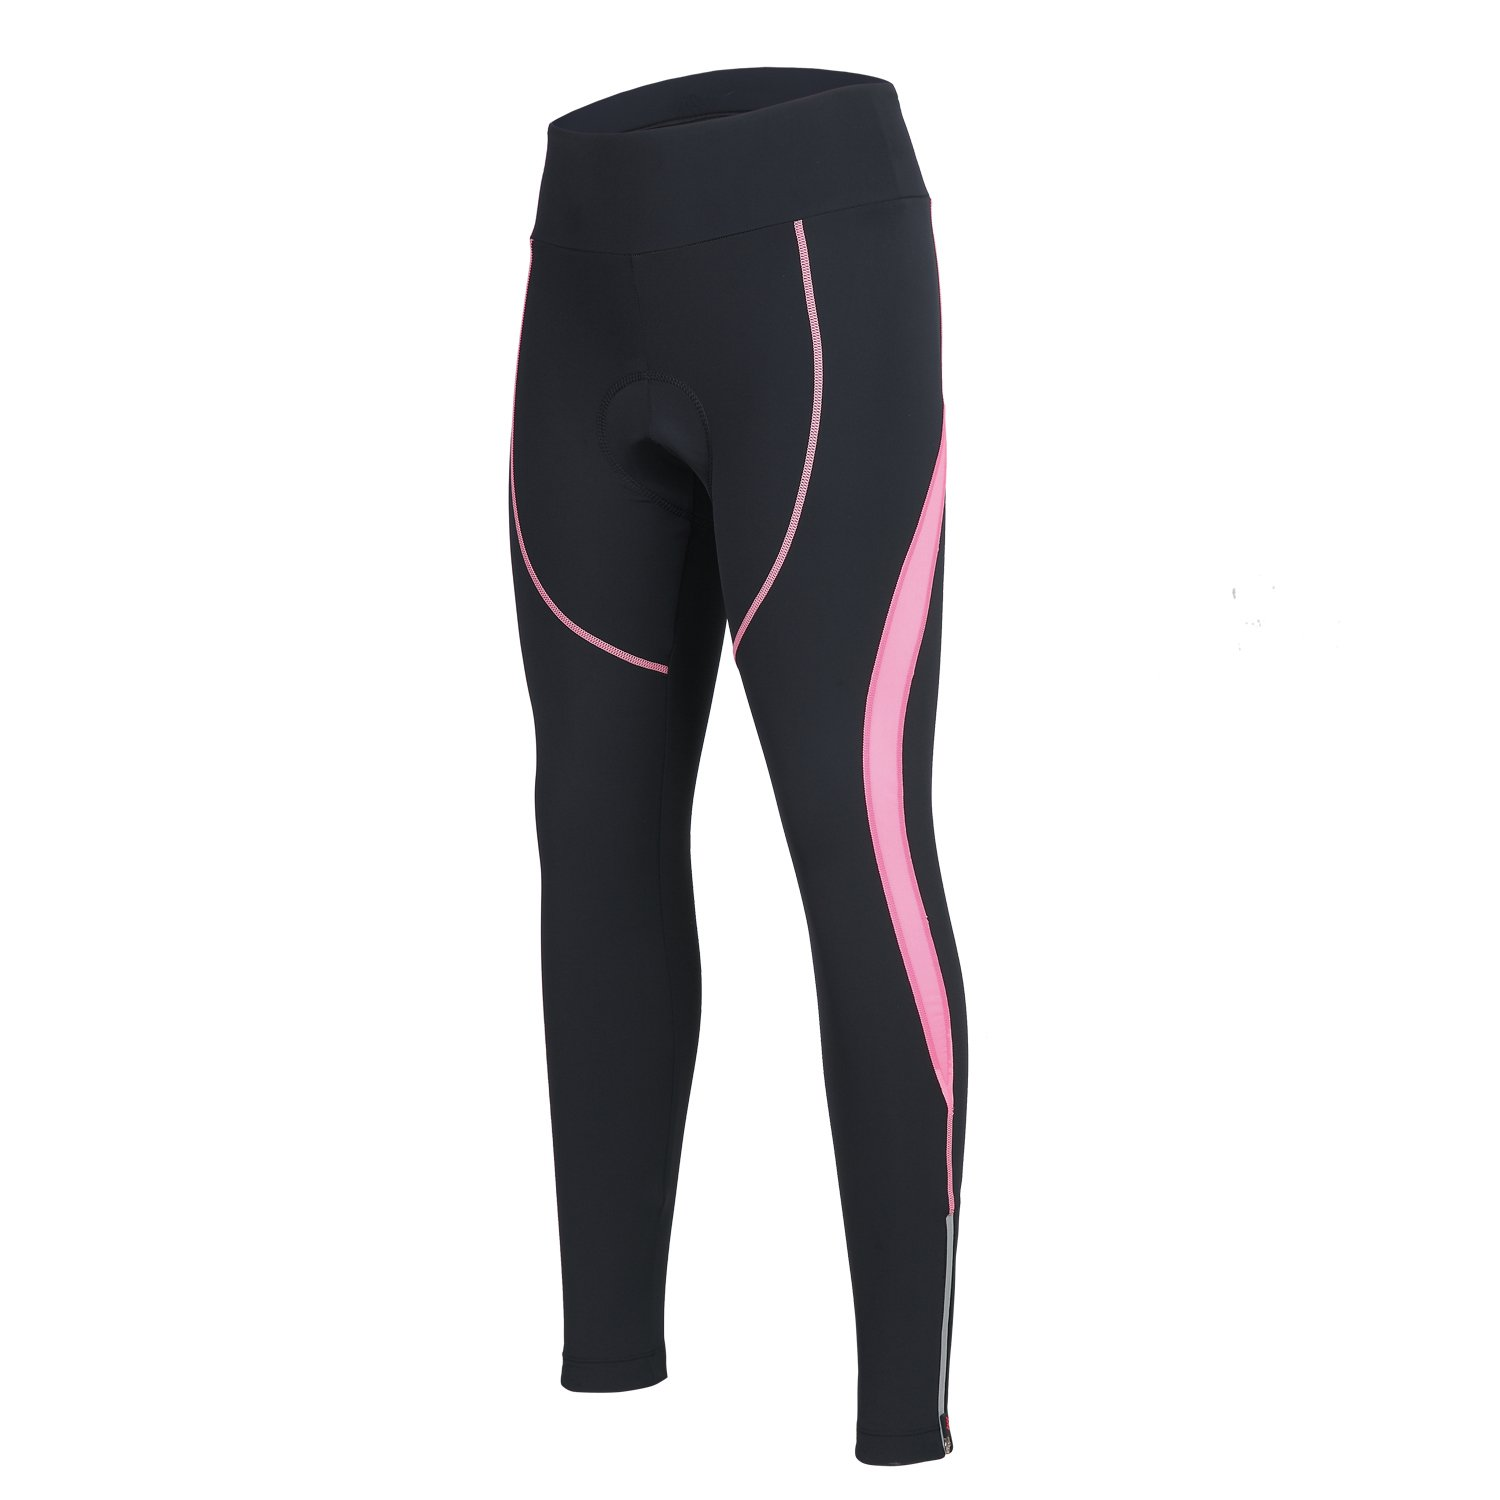 Women's Cycling Pants 3D Padded Compression Tight, Long Bike Bicycle Pants with Wide Waistband (Orchid Pink,L) by SPOEAR